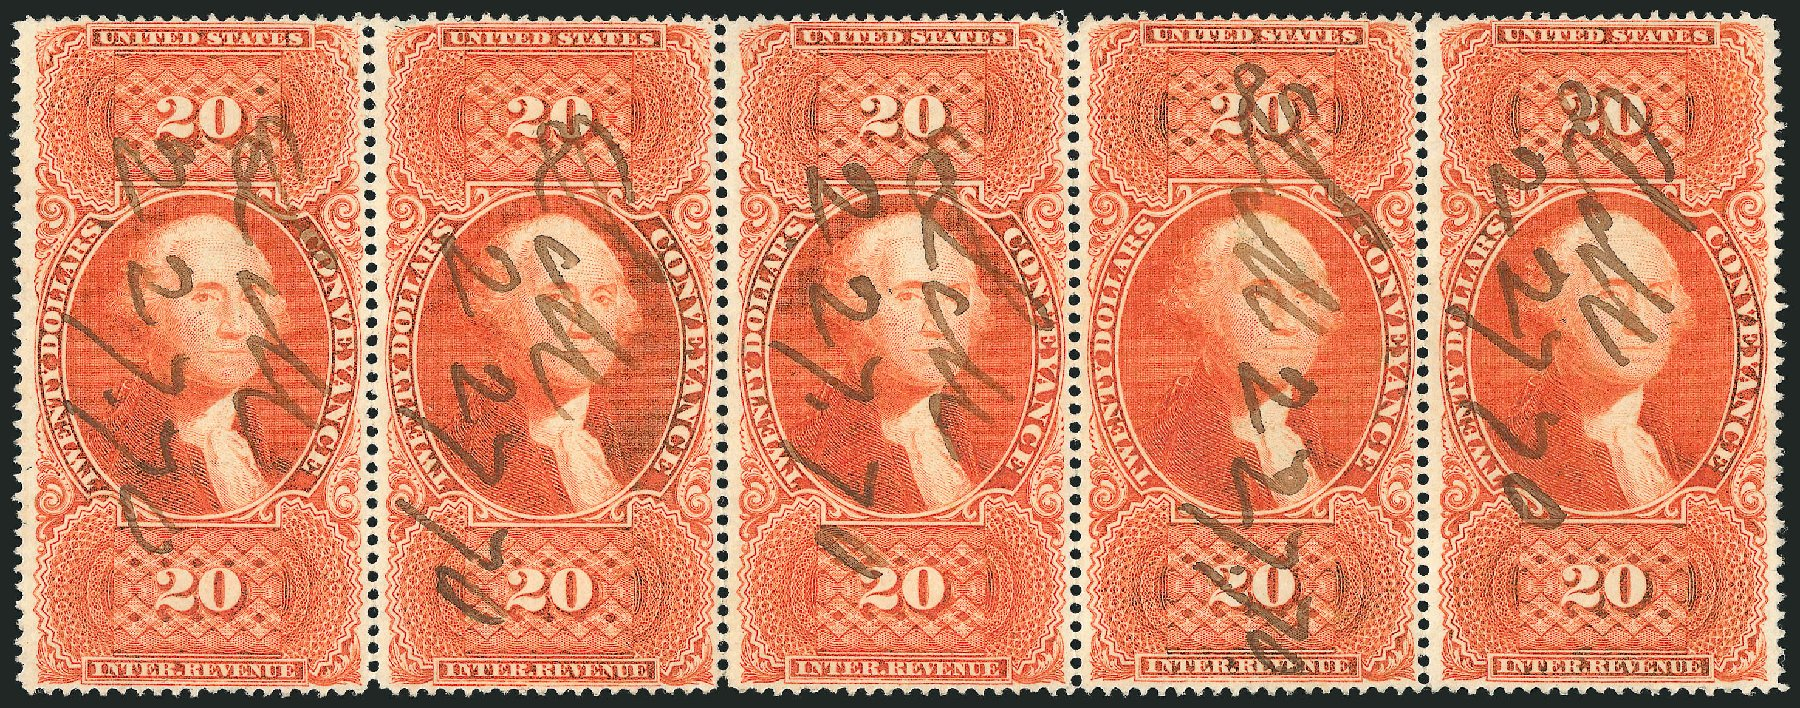 Costs of US Stamps Scott Catalogue #R98: US$20.00 1862 Revenue Conveyance. Robert Siegel Auction Galleries, Dec 2014, Sale 1089, Lot 463